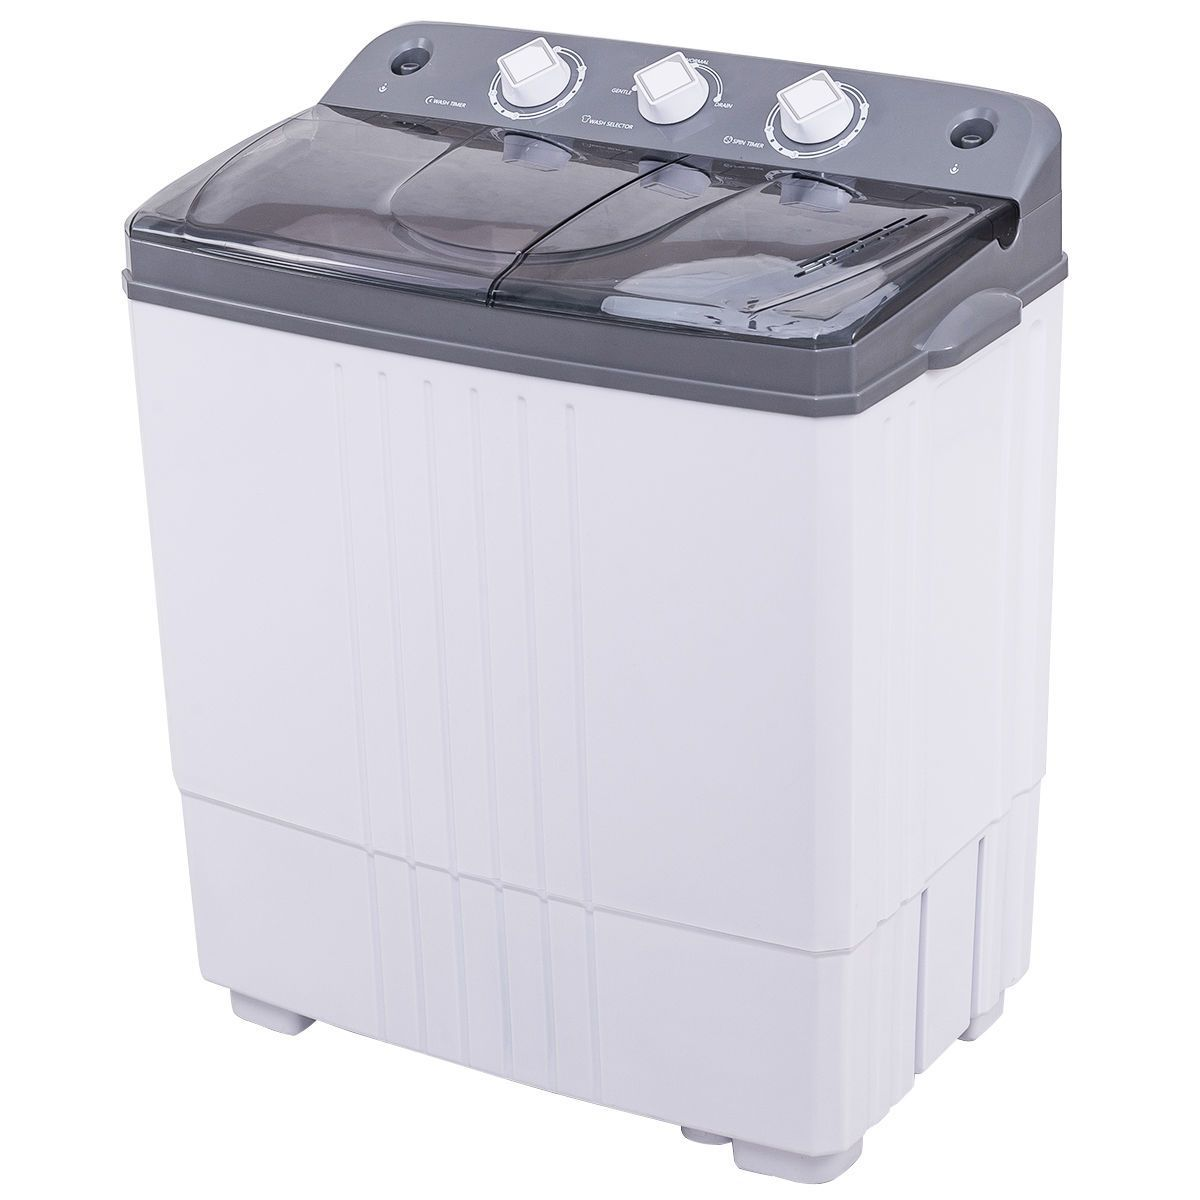 Notice Not Sold To Consumers Located In California Our Twin Tub Washing Machine Is Perfec In 2020 Mini Washing Machine Portable Washing Machine Washing Machine Washer